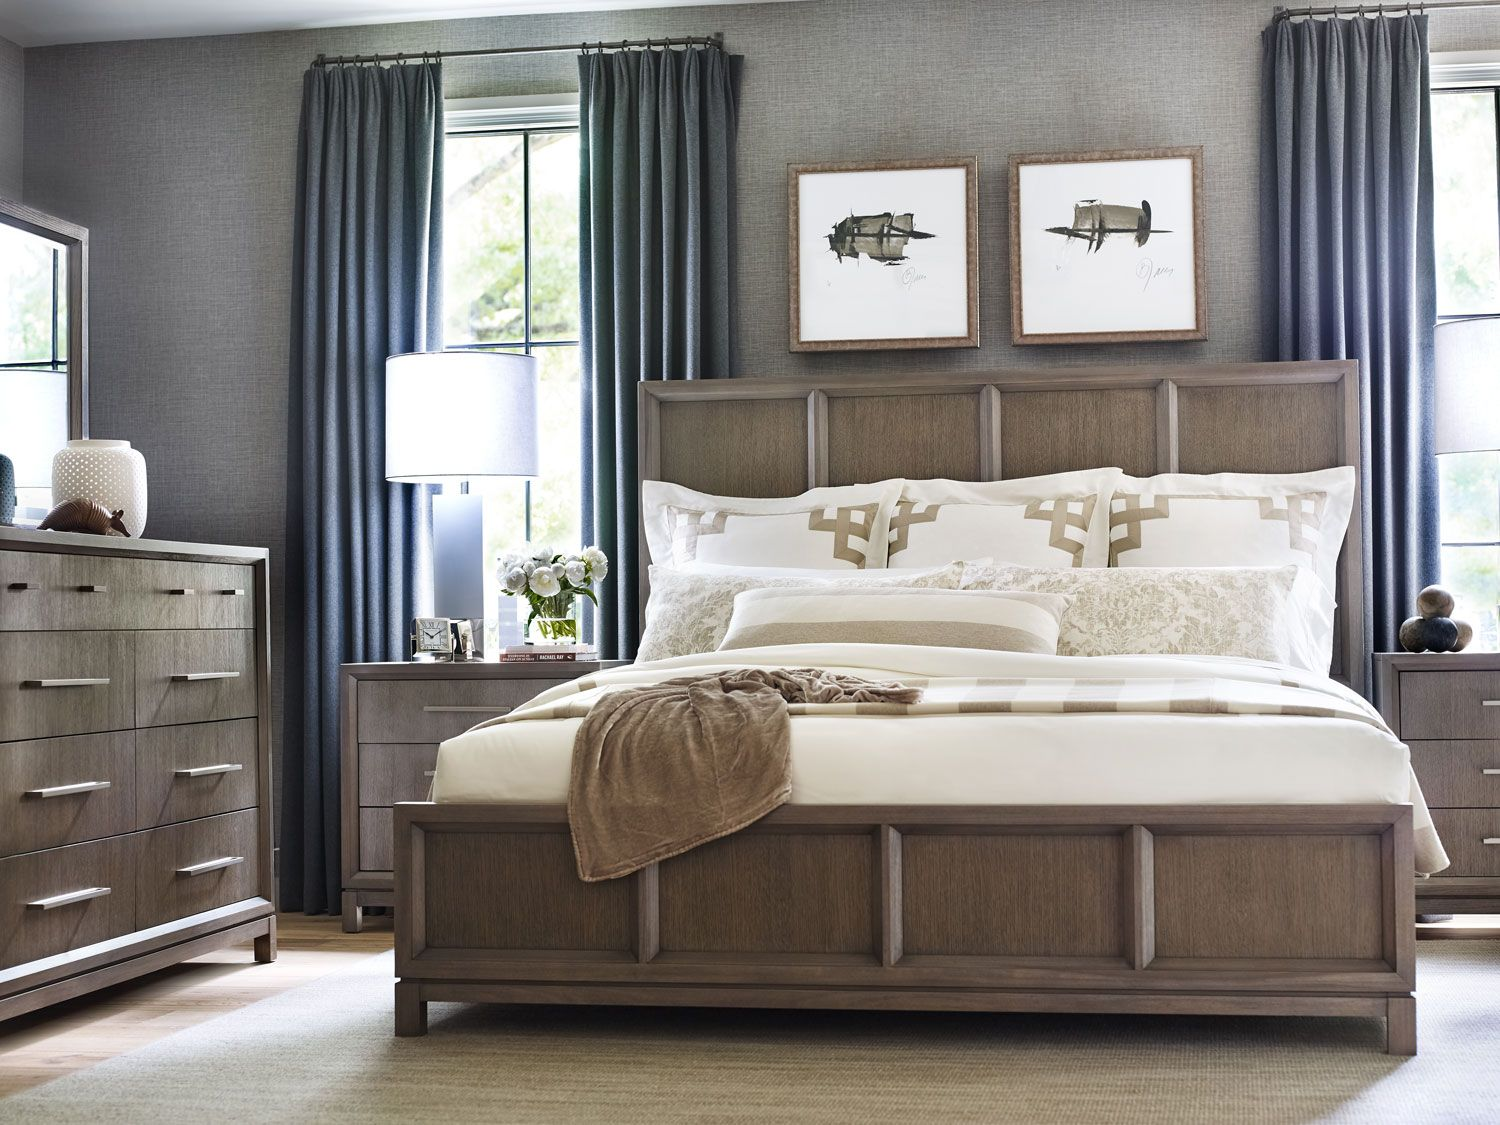 Highline Queen Panel Bed Bedrooms First Columbus Ohio Bedrooms First Strives To Be The Premier Bedroom Furniture Specialist We Fo Furniture Chocolate Bedroom Bed Furniture